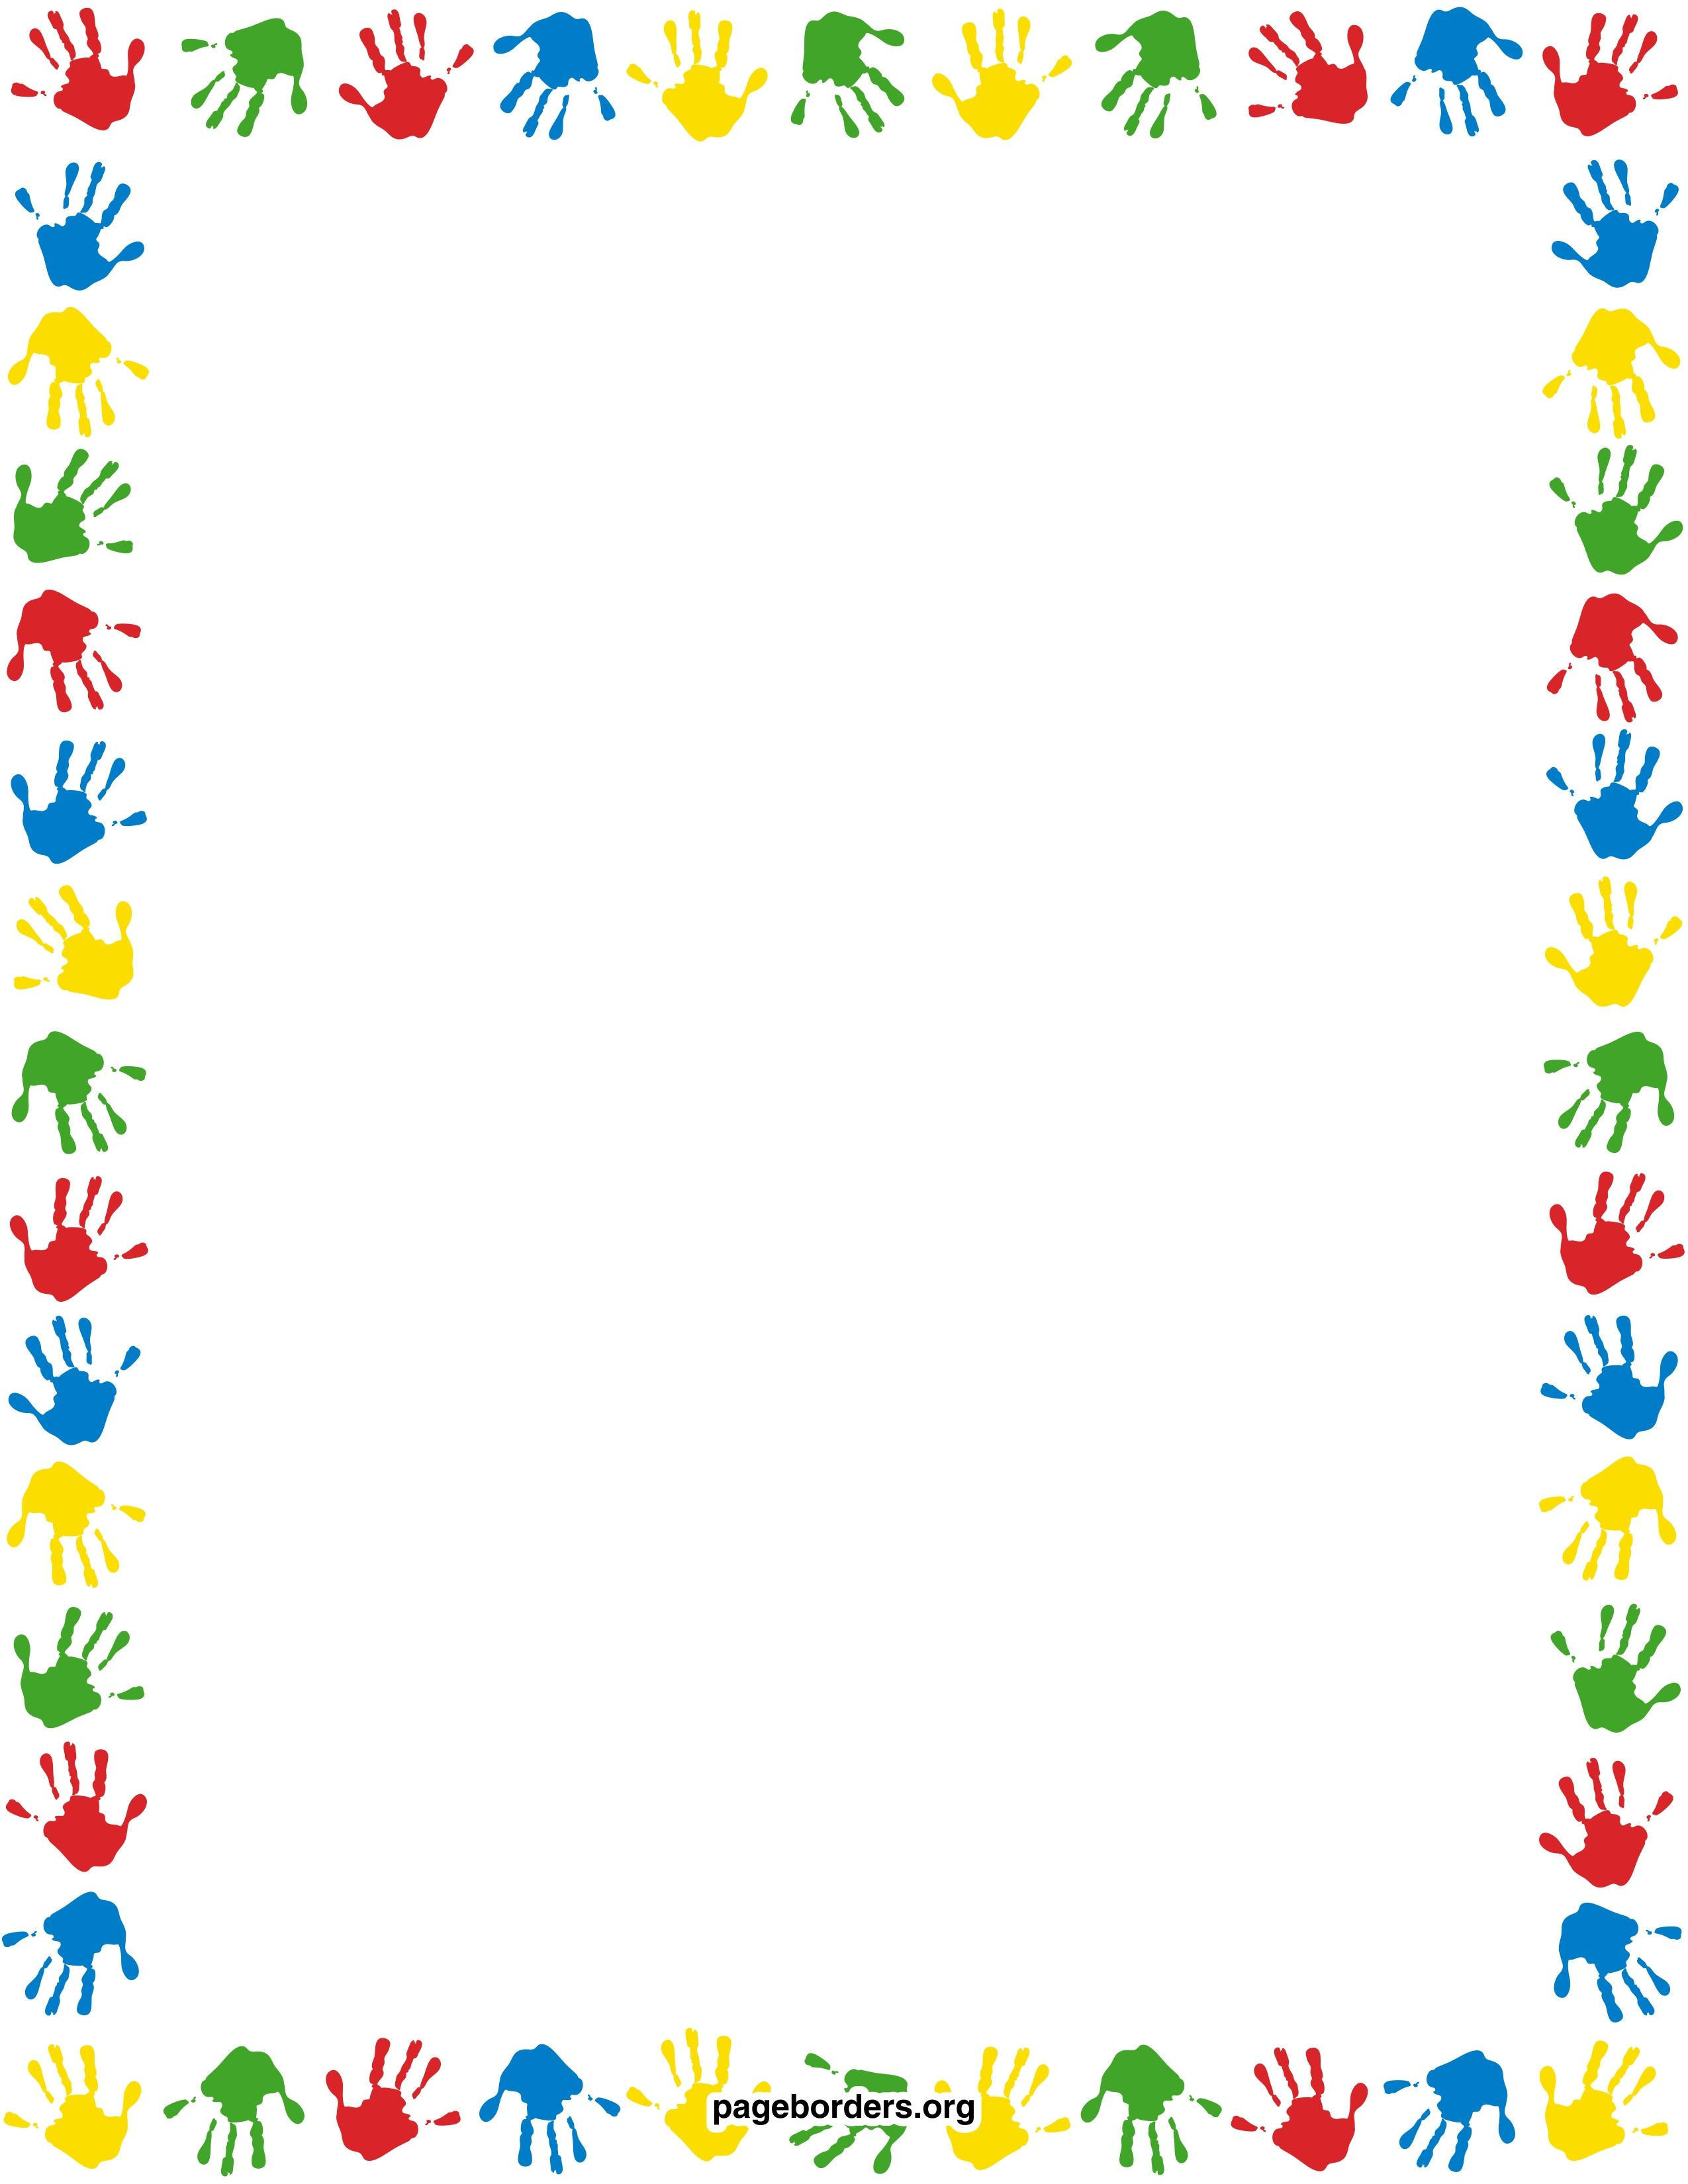 handprint border watermarked. (2550×3300) | pagina randen